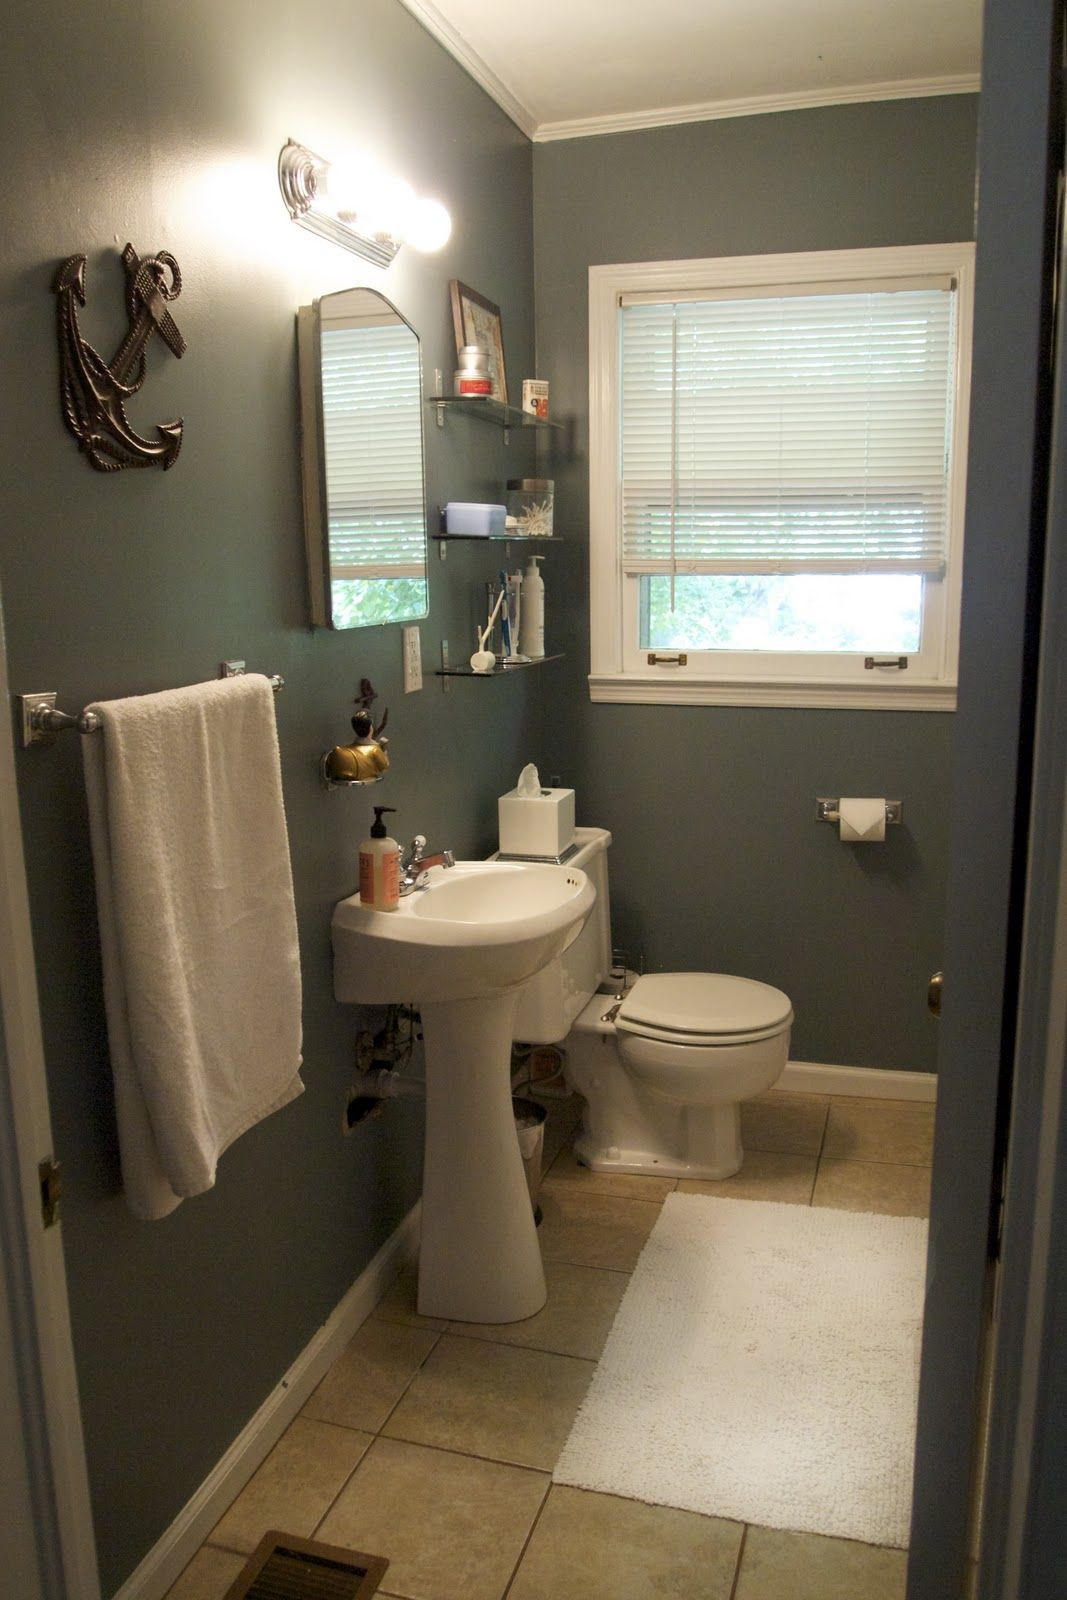 behr nature retreat design in my home paint colors for on paint colors designers use id=58129